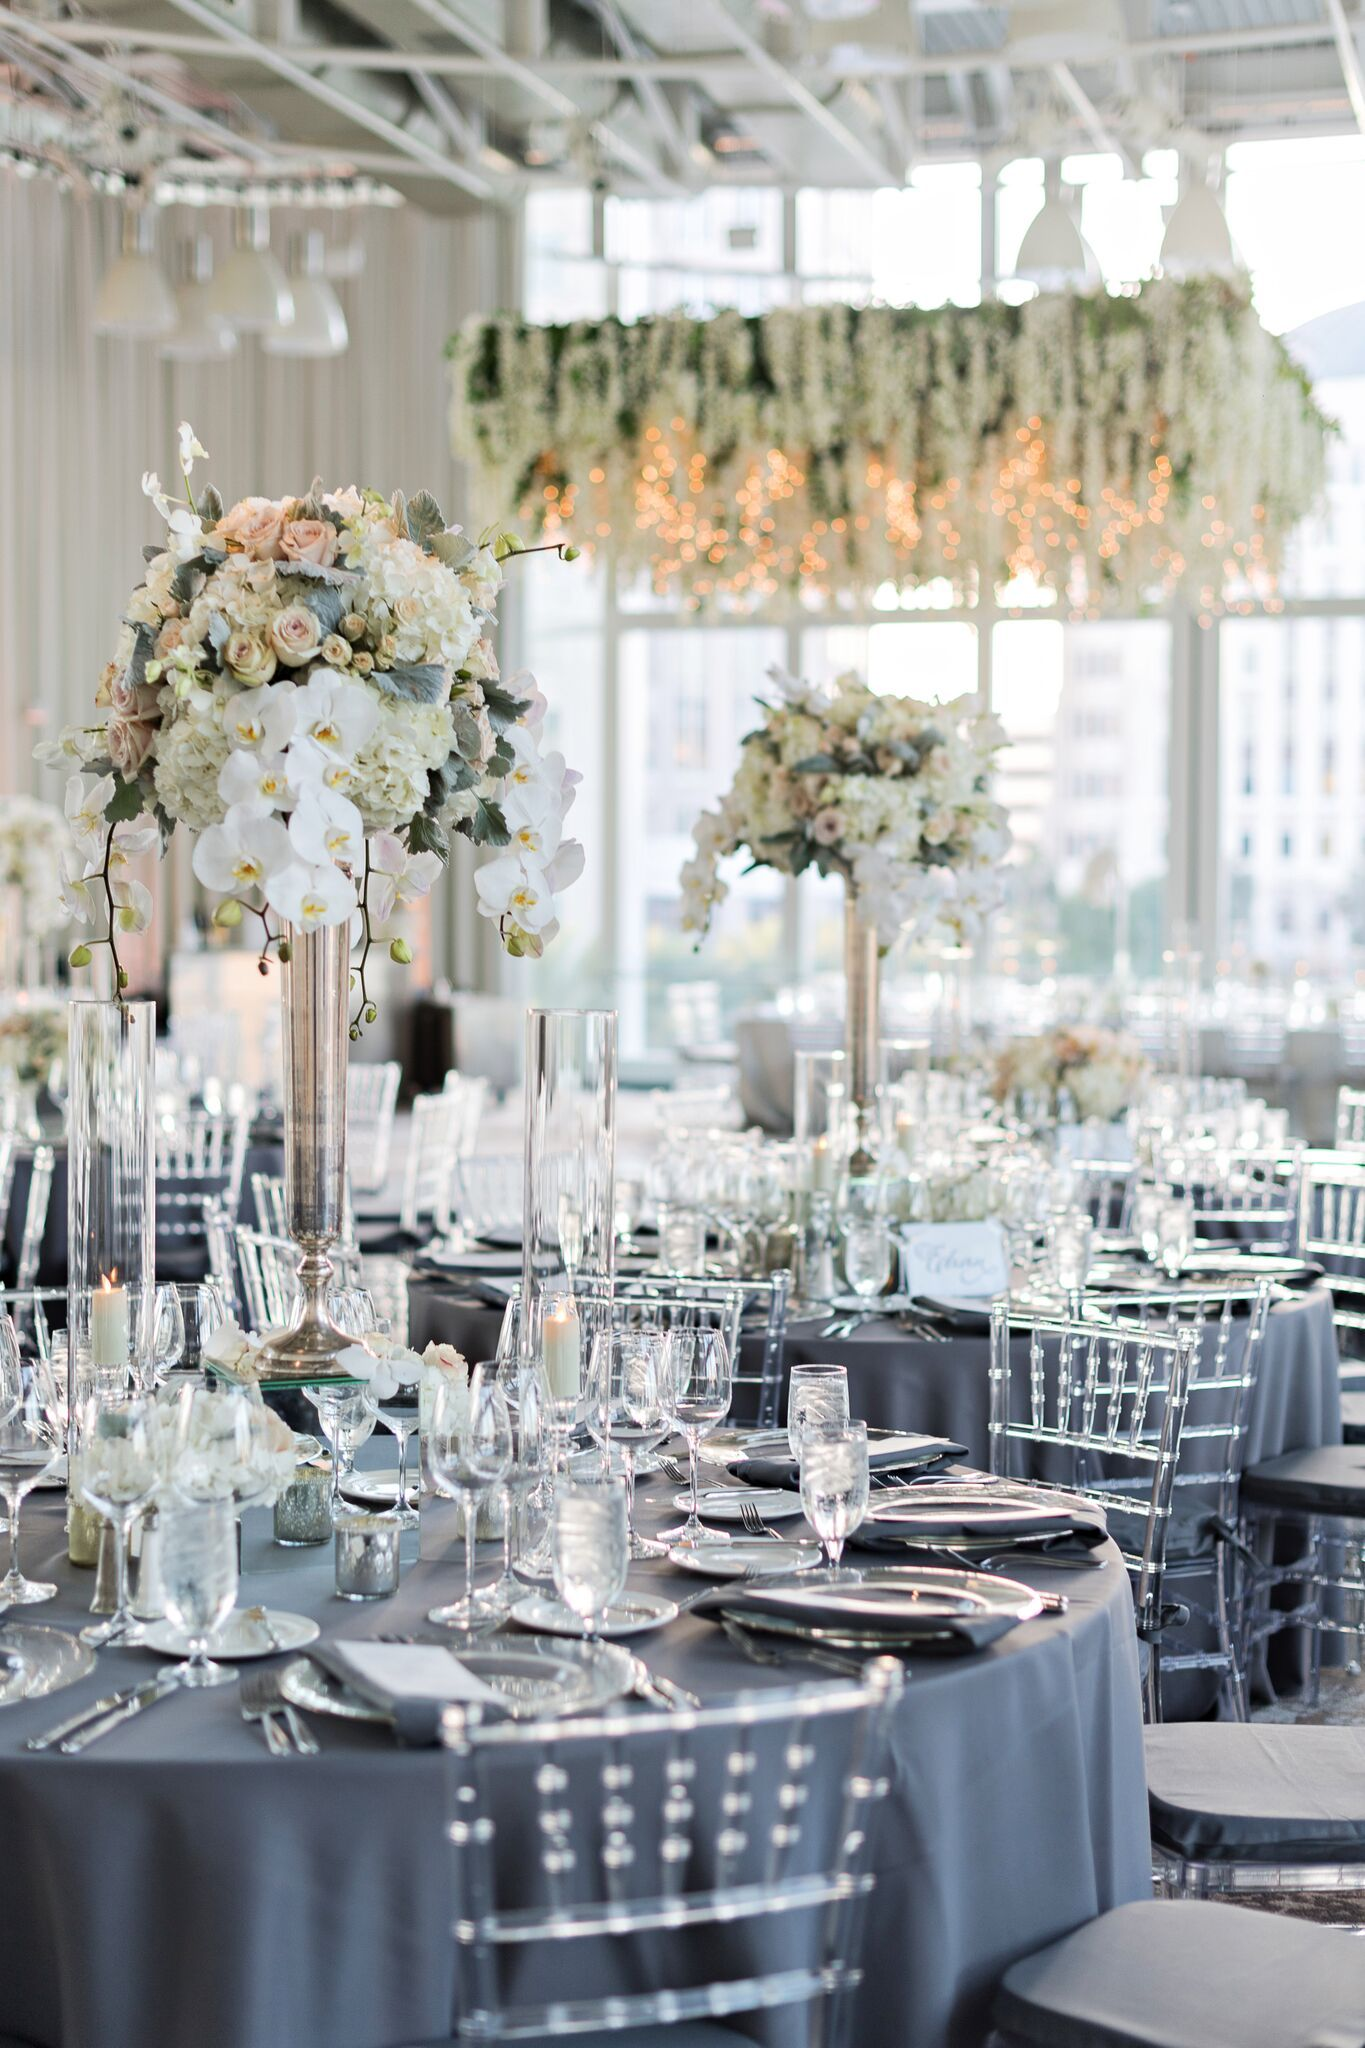 clear chiavari chairs kohls baby rocking chair in 2019 orlando wedding and party rentals check them out more on our website by clicking the photo or at orlandoweddingandpartyrentals com